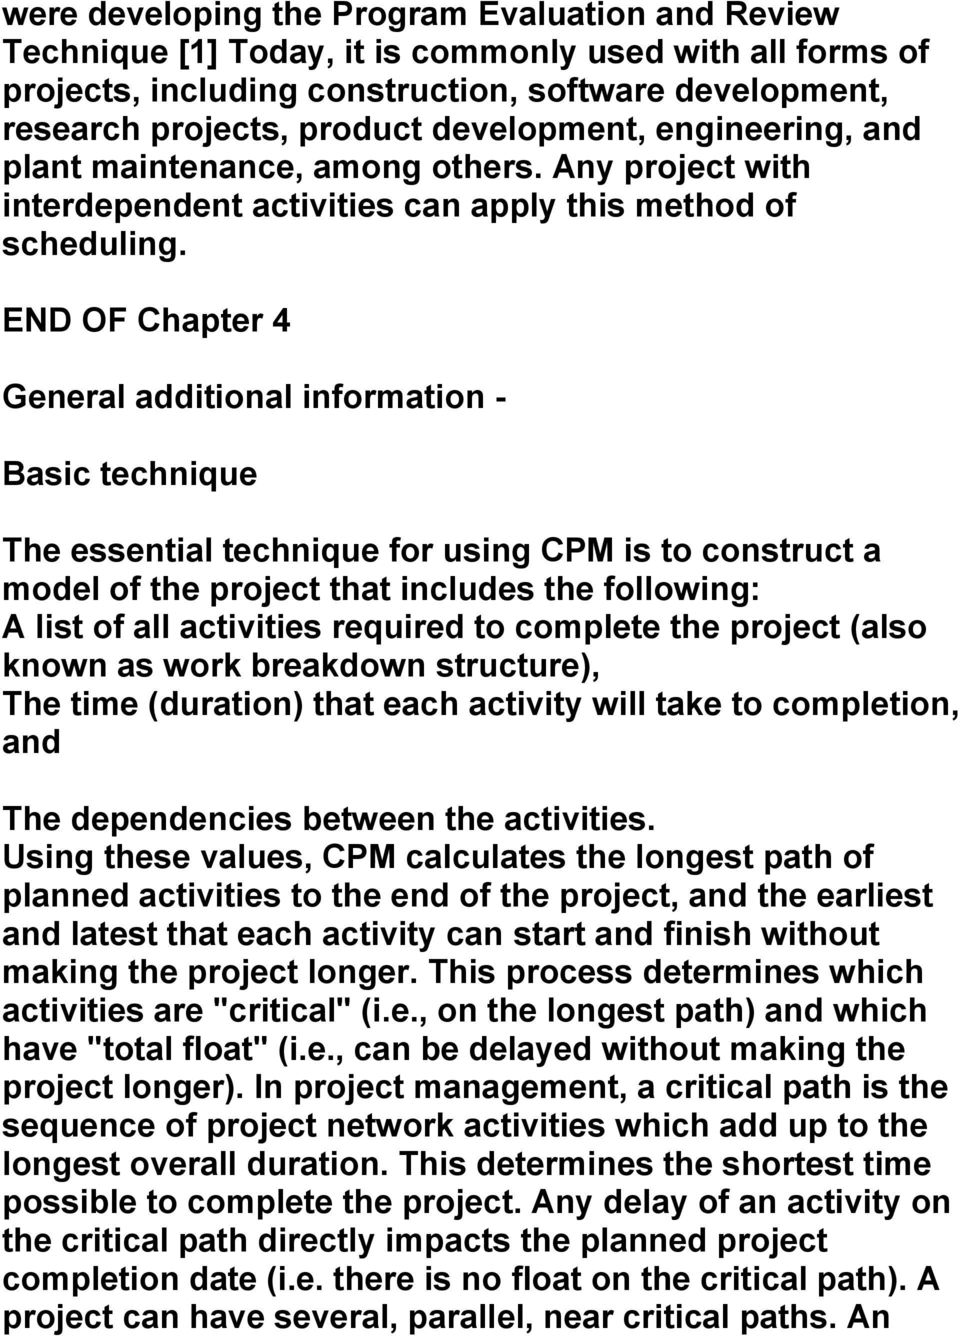 END OF Chapter 4 General additional information - Basic technique The essential technique for using CPM is to construct a model of the project that includes the following: A list of all activities